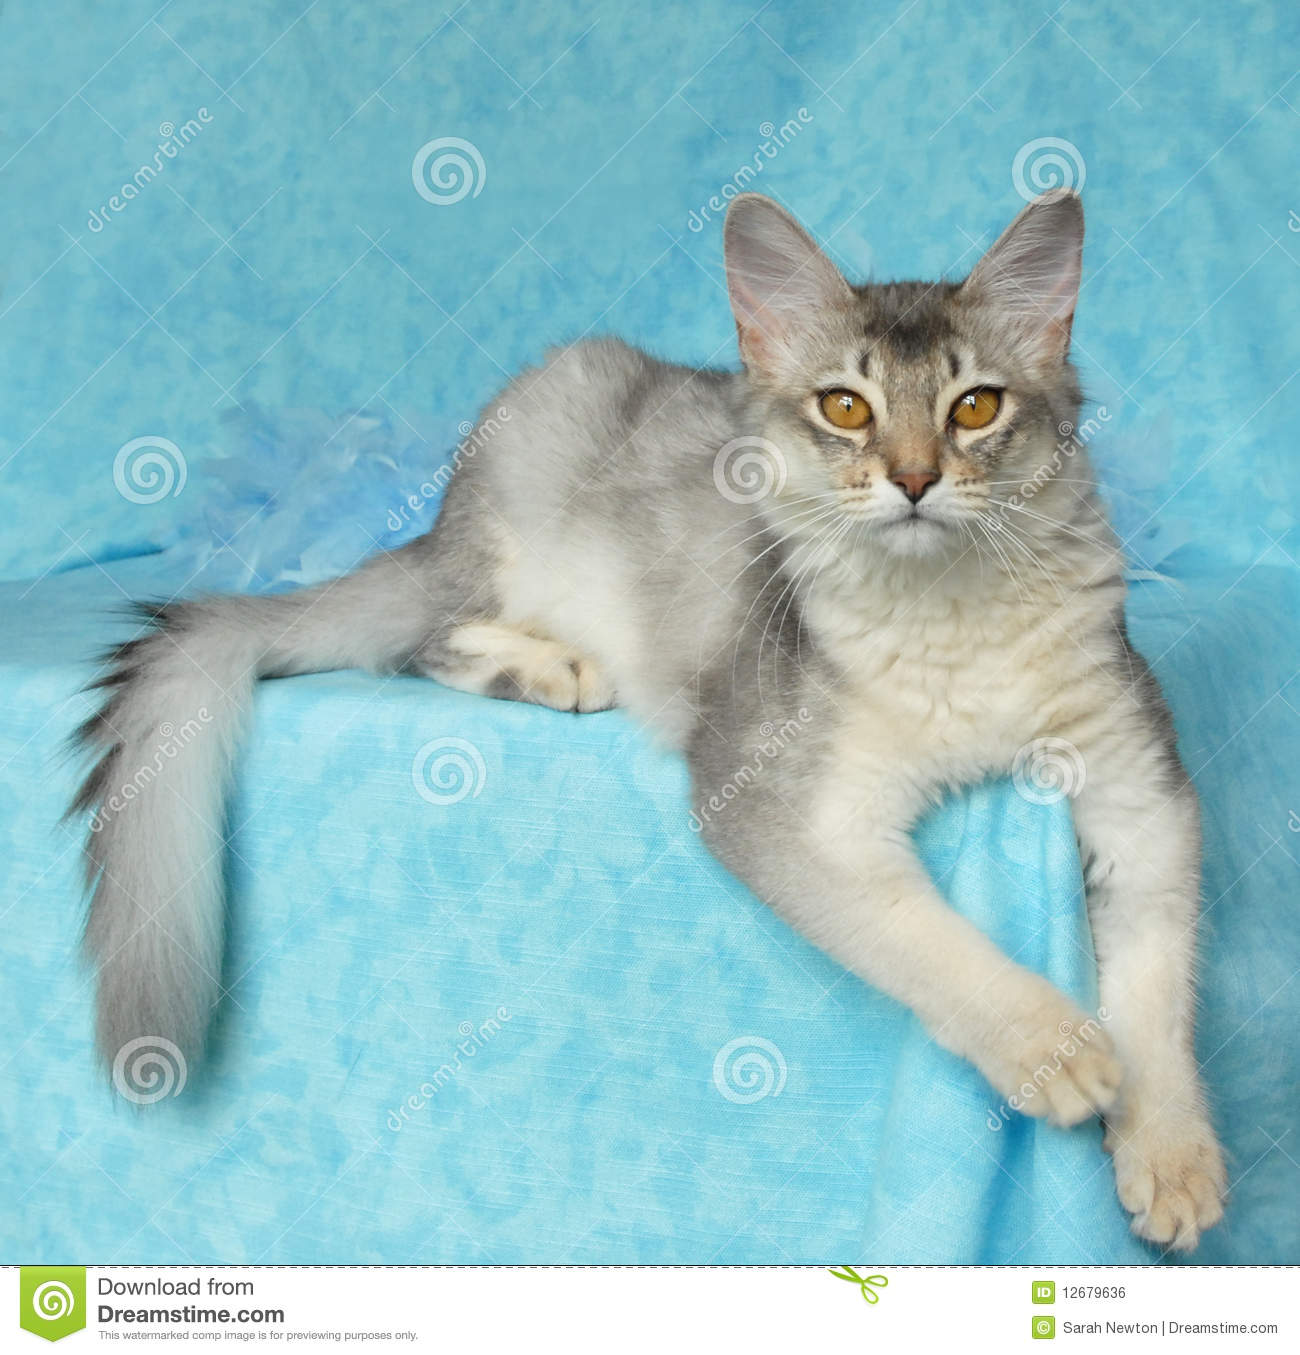 dc00c38a083 Blue silver somali. Cat lying on a blue background royalty free stock image